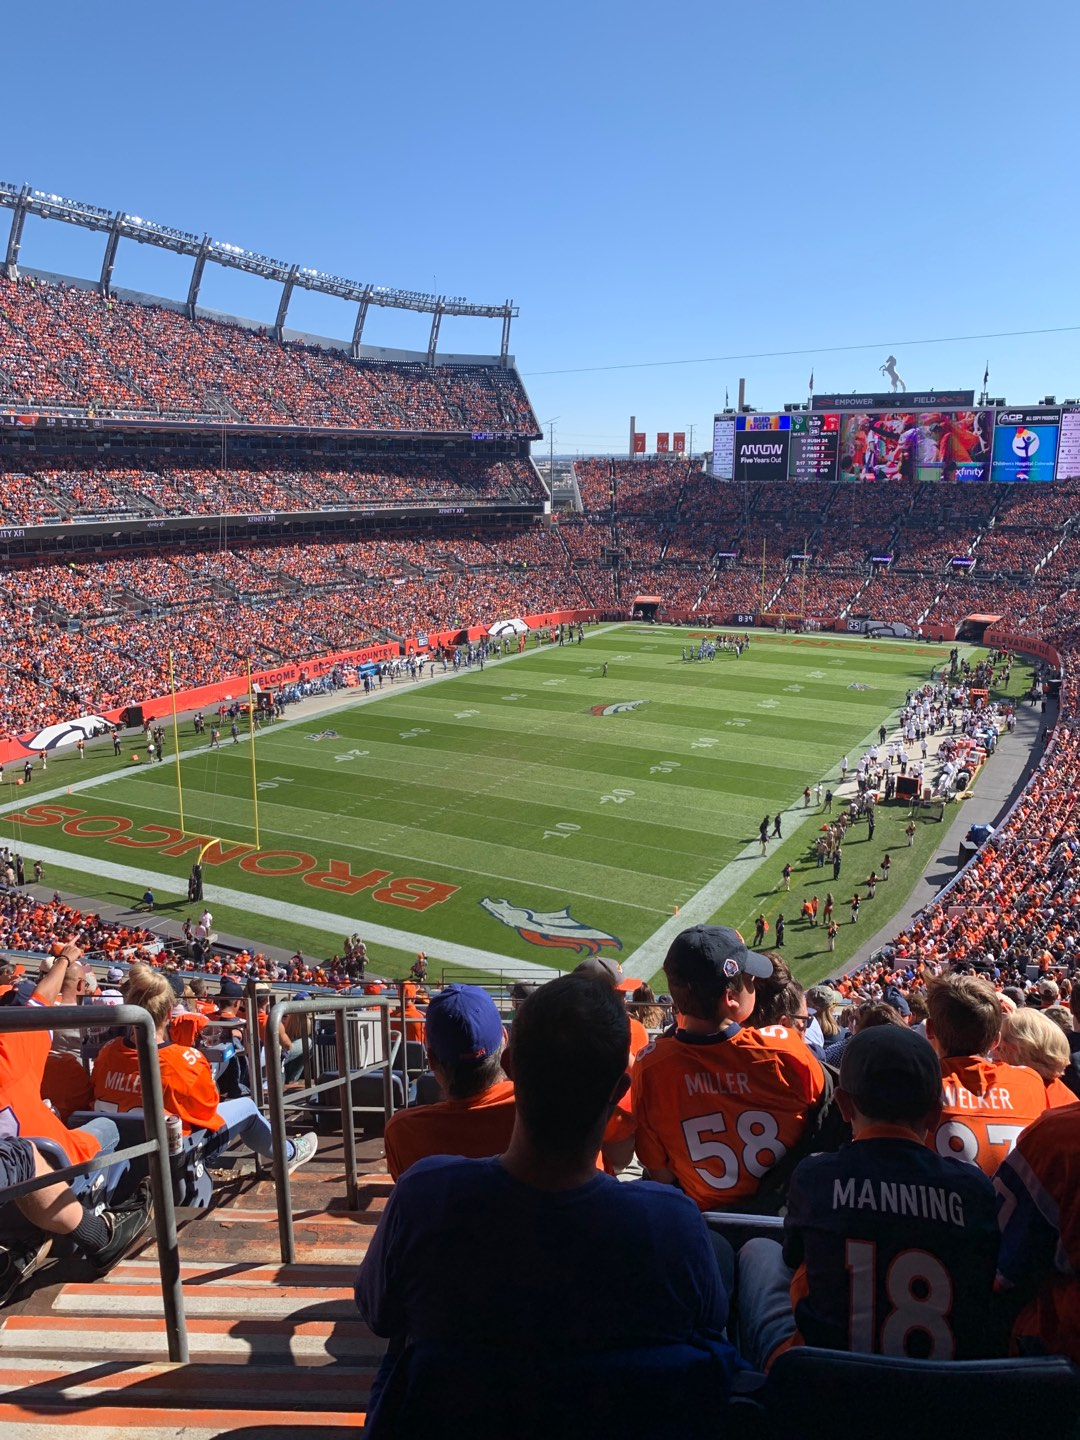 Empower Field at Mile High Stadium Section 319 Row 16 Seat 22